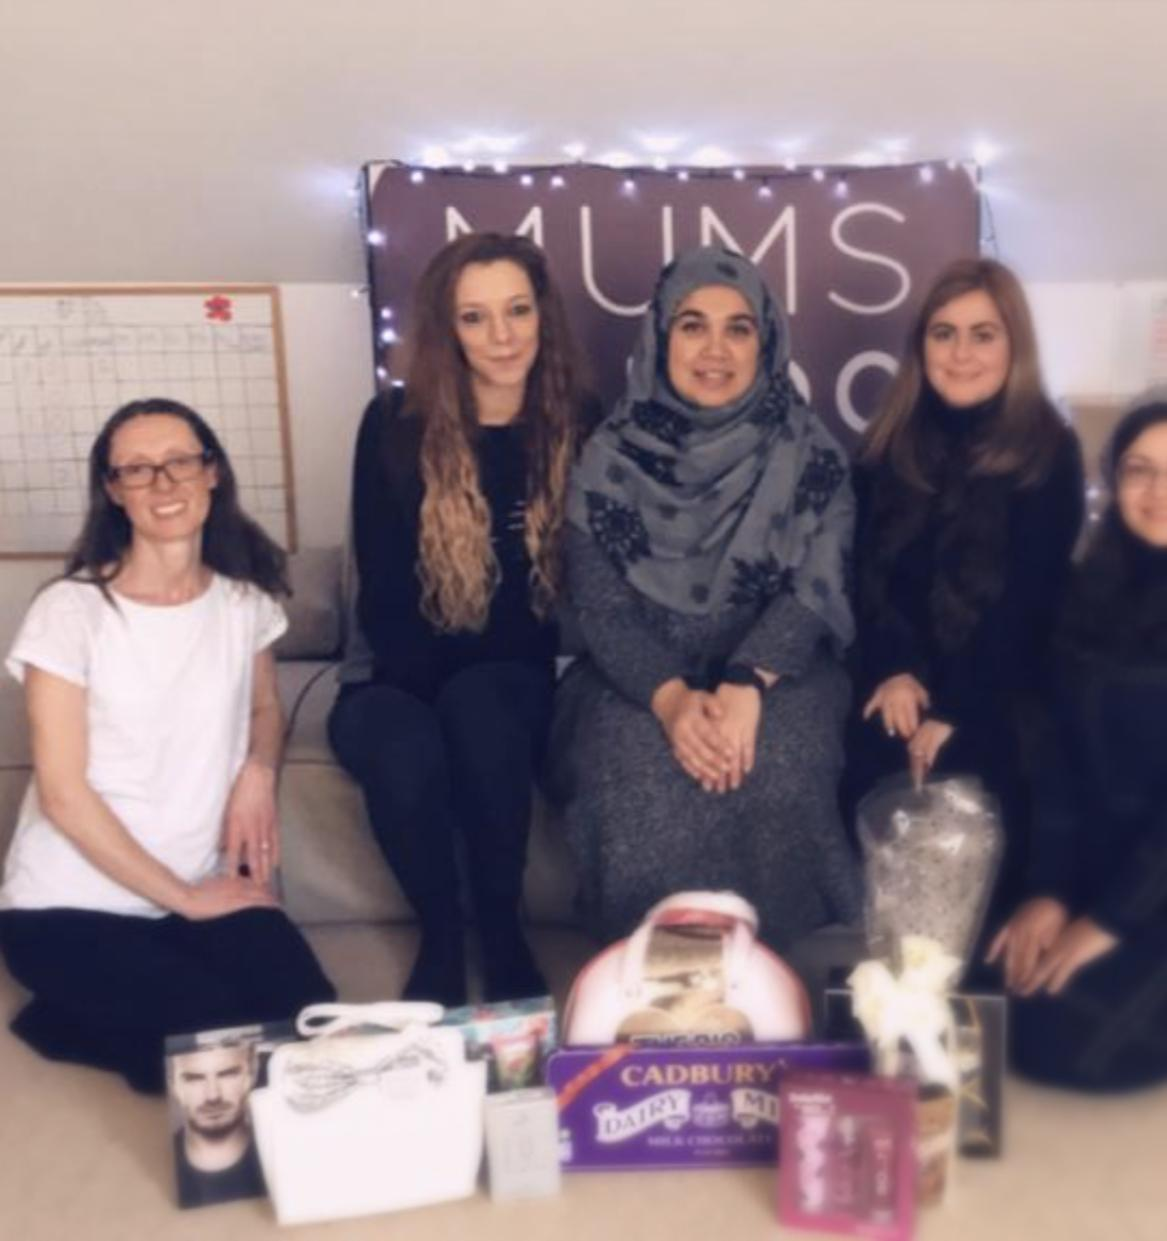 The staff at Mums Can Do are raising money for the Women's Refuge Centre